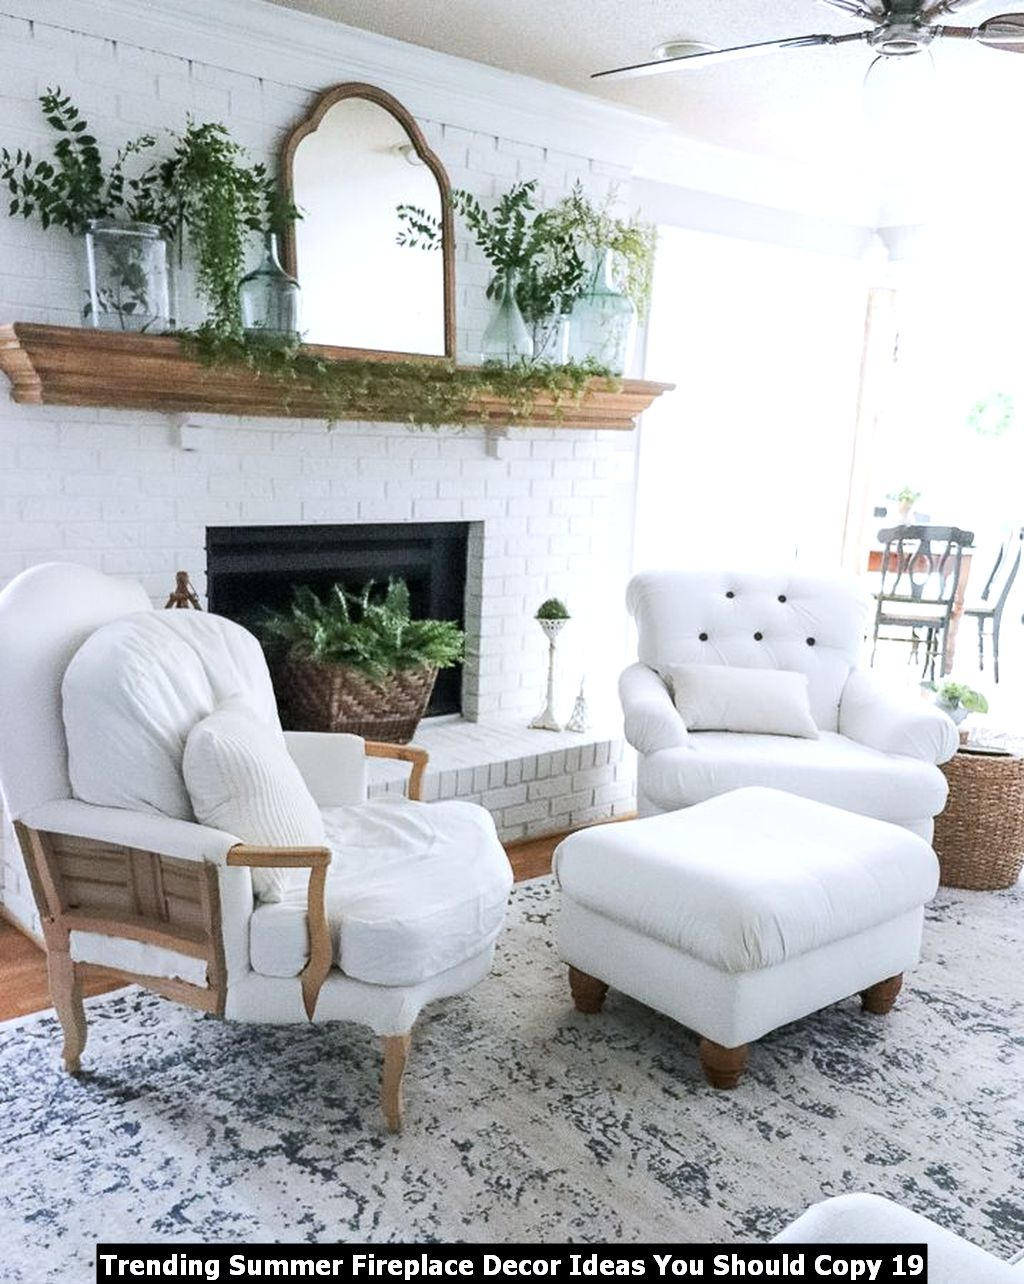 Trending Summer Fireplace Decor Ideas You Should Copy 19